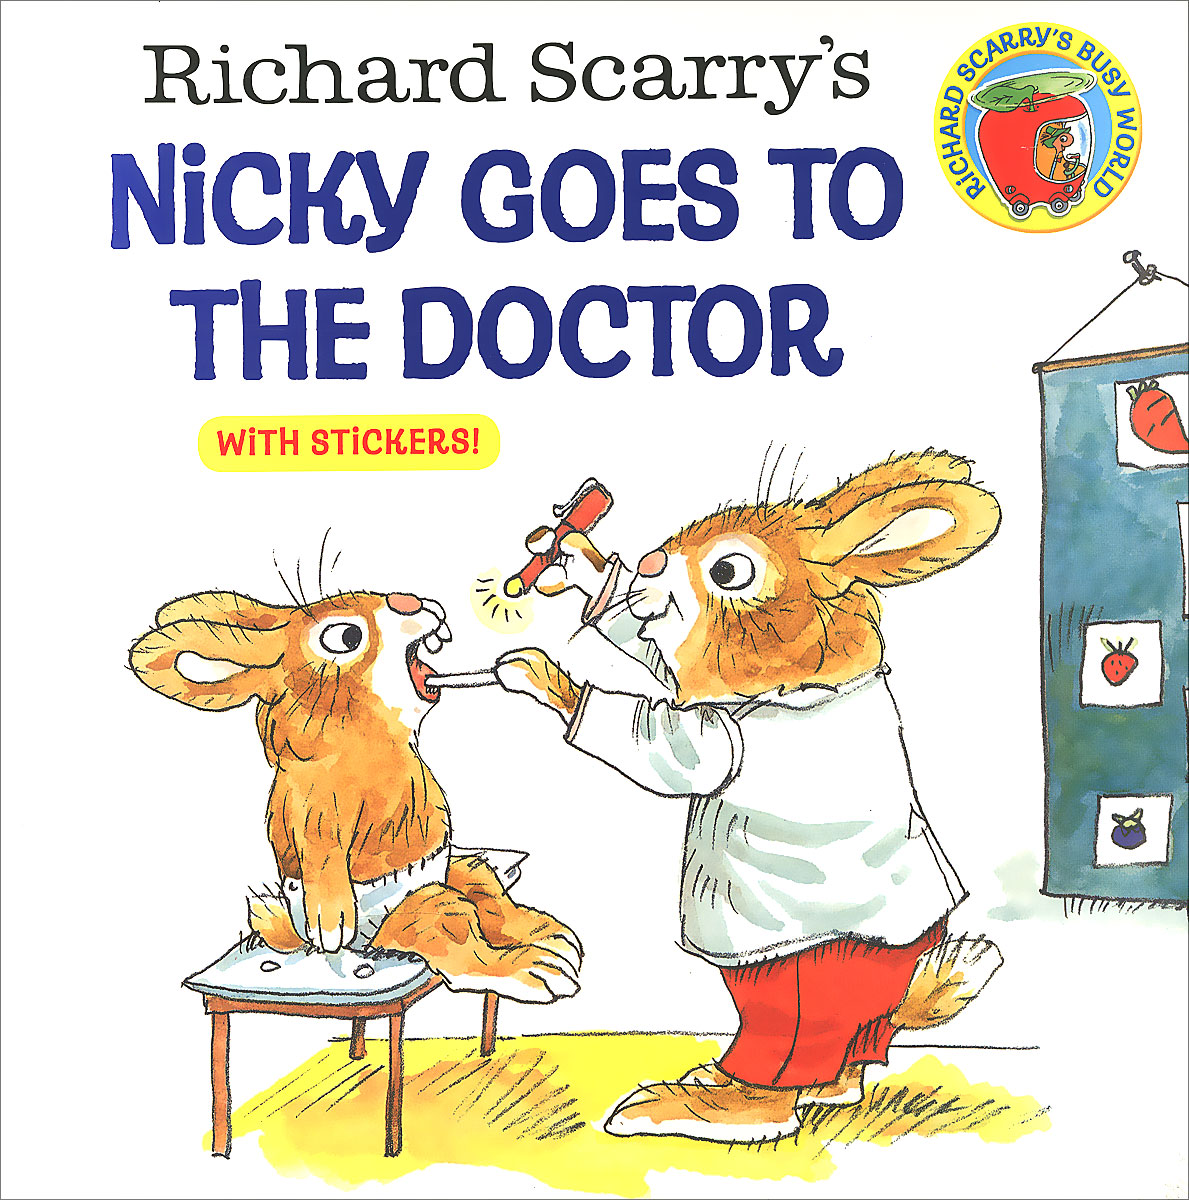 Richard Scarry's Nicky Goes to the Doctor peppa goes to the library